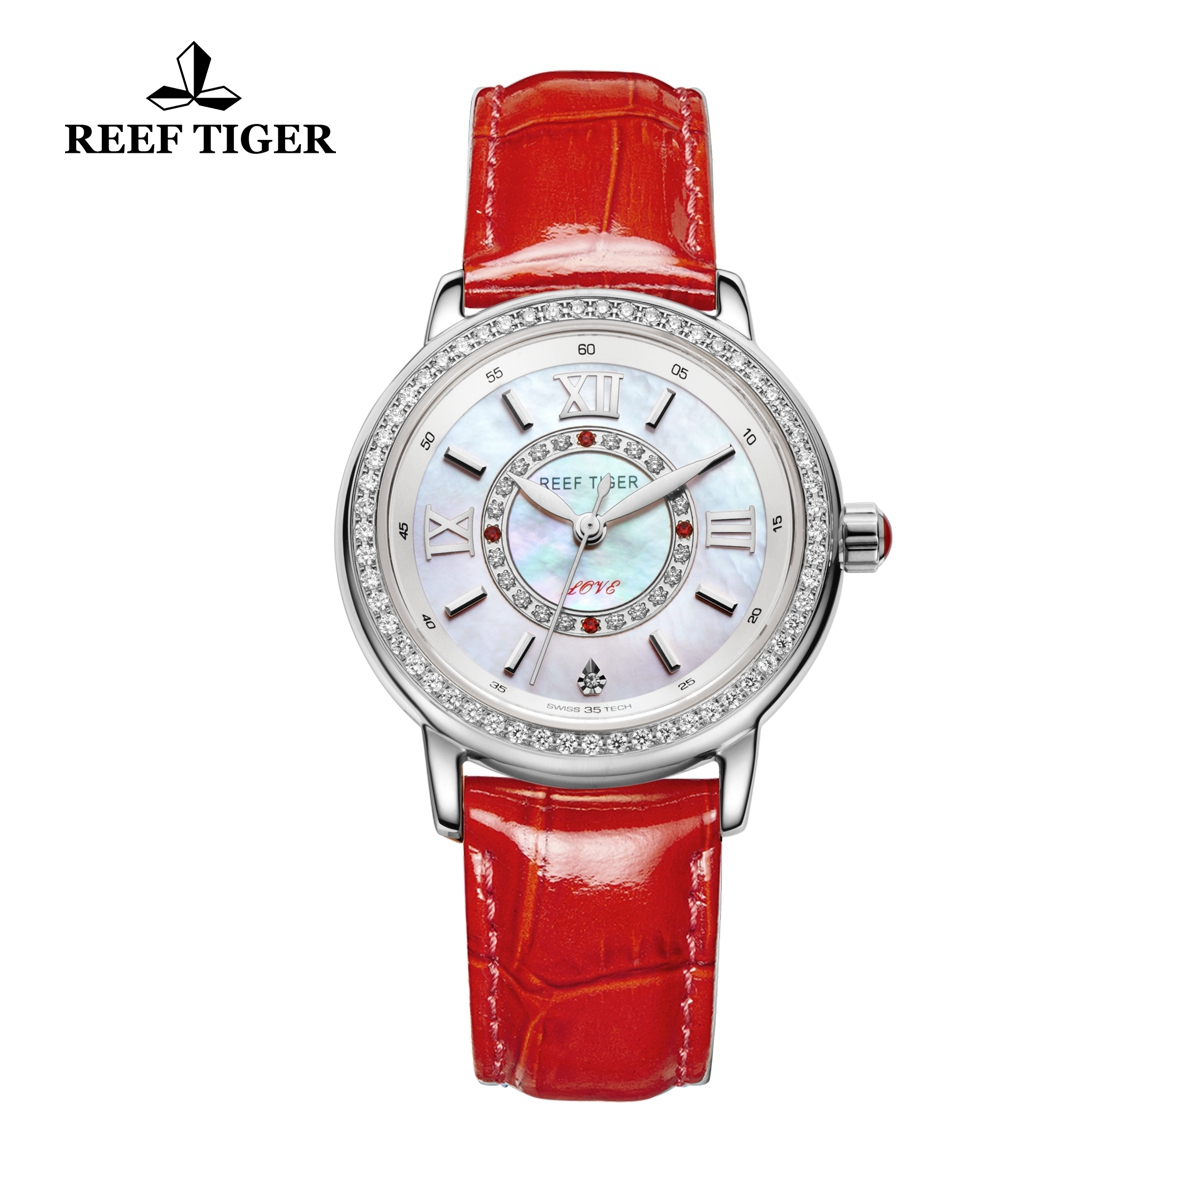 Reef Tiger Lady Fashion Watch White MOP Dial Quartz Stainless Steel Diamonds Bezel Watch RGA1563-YWR